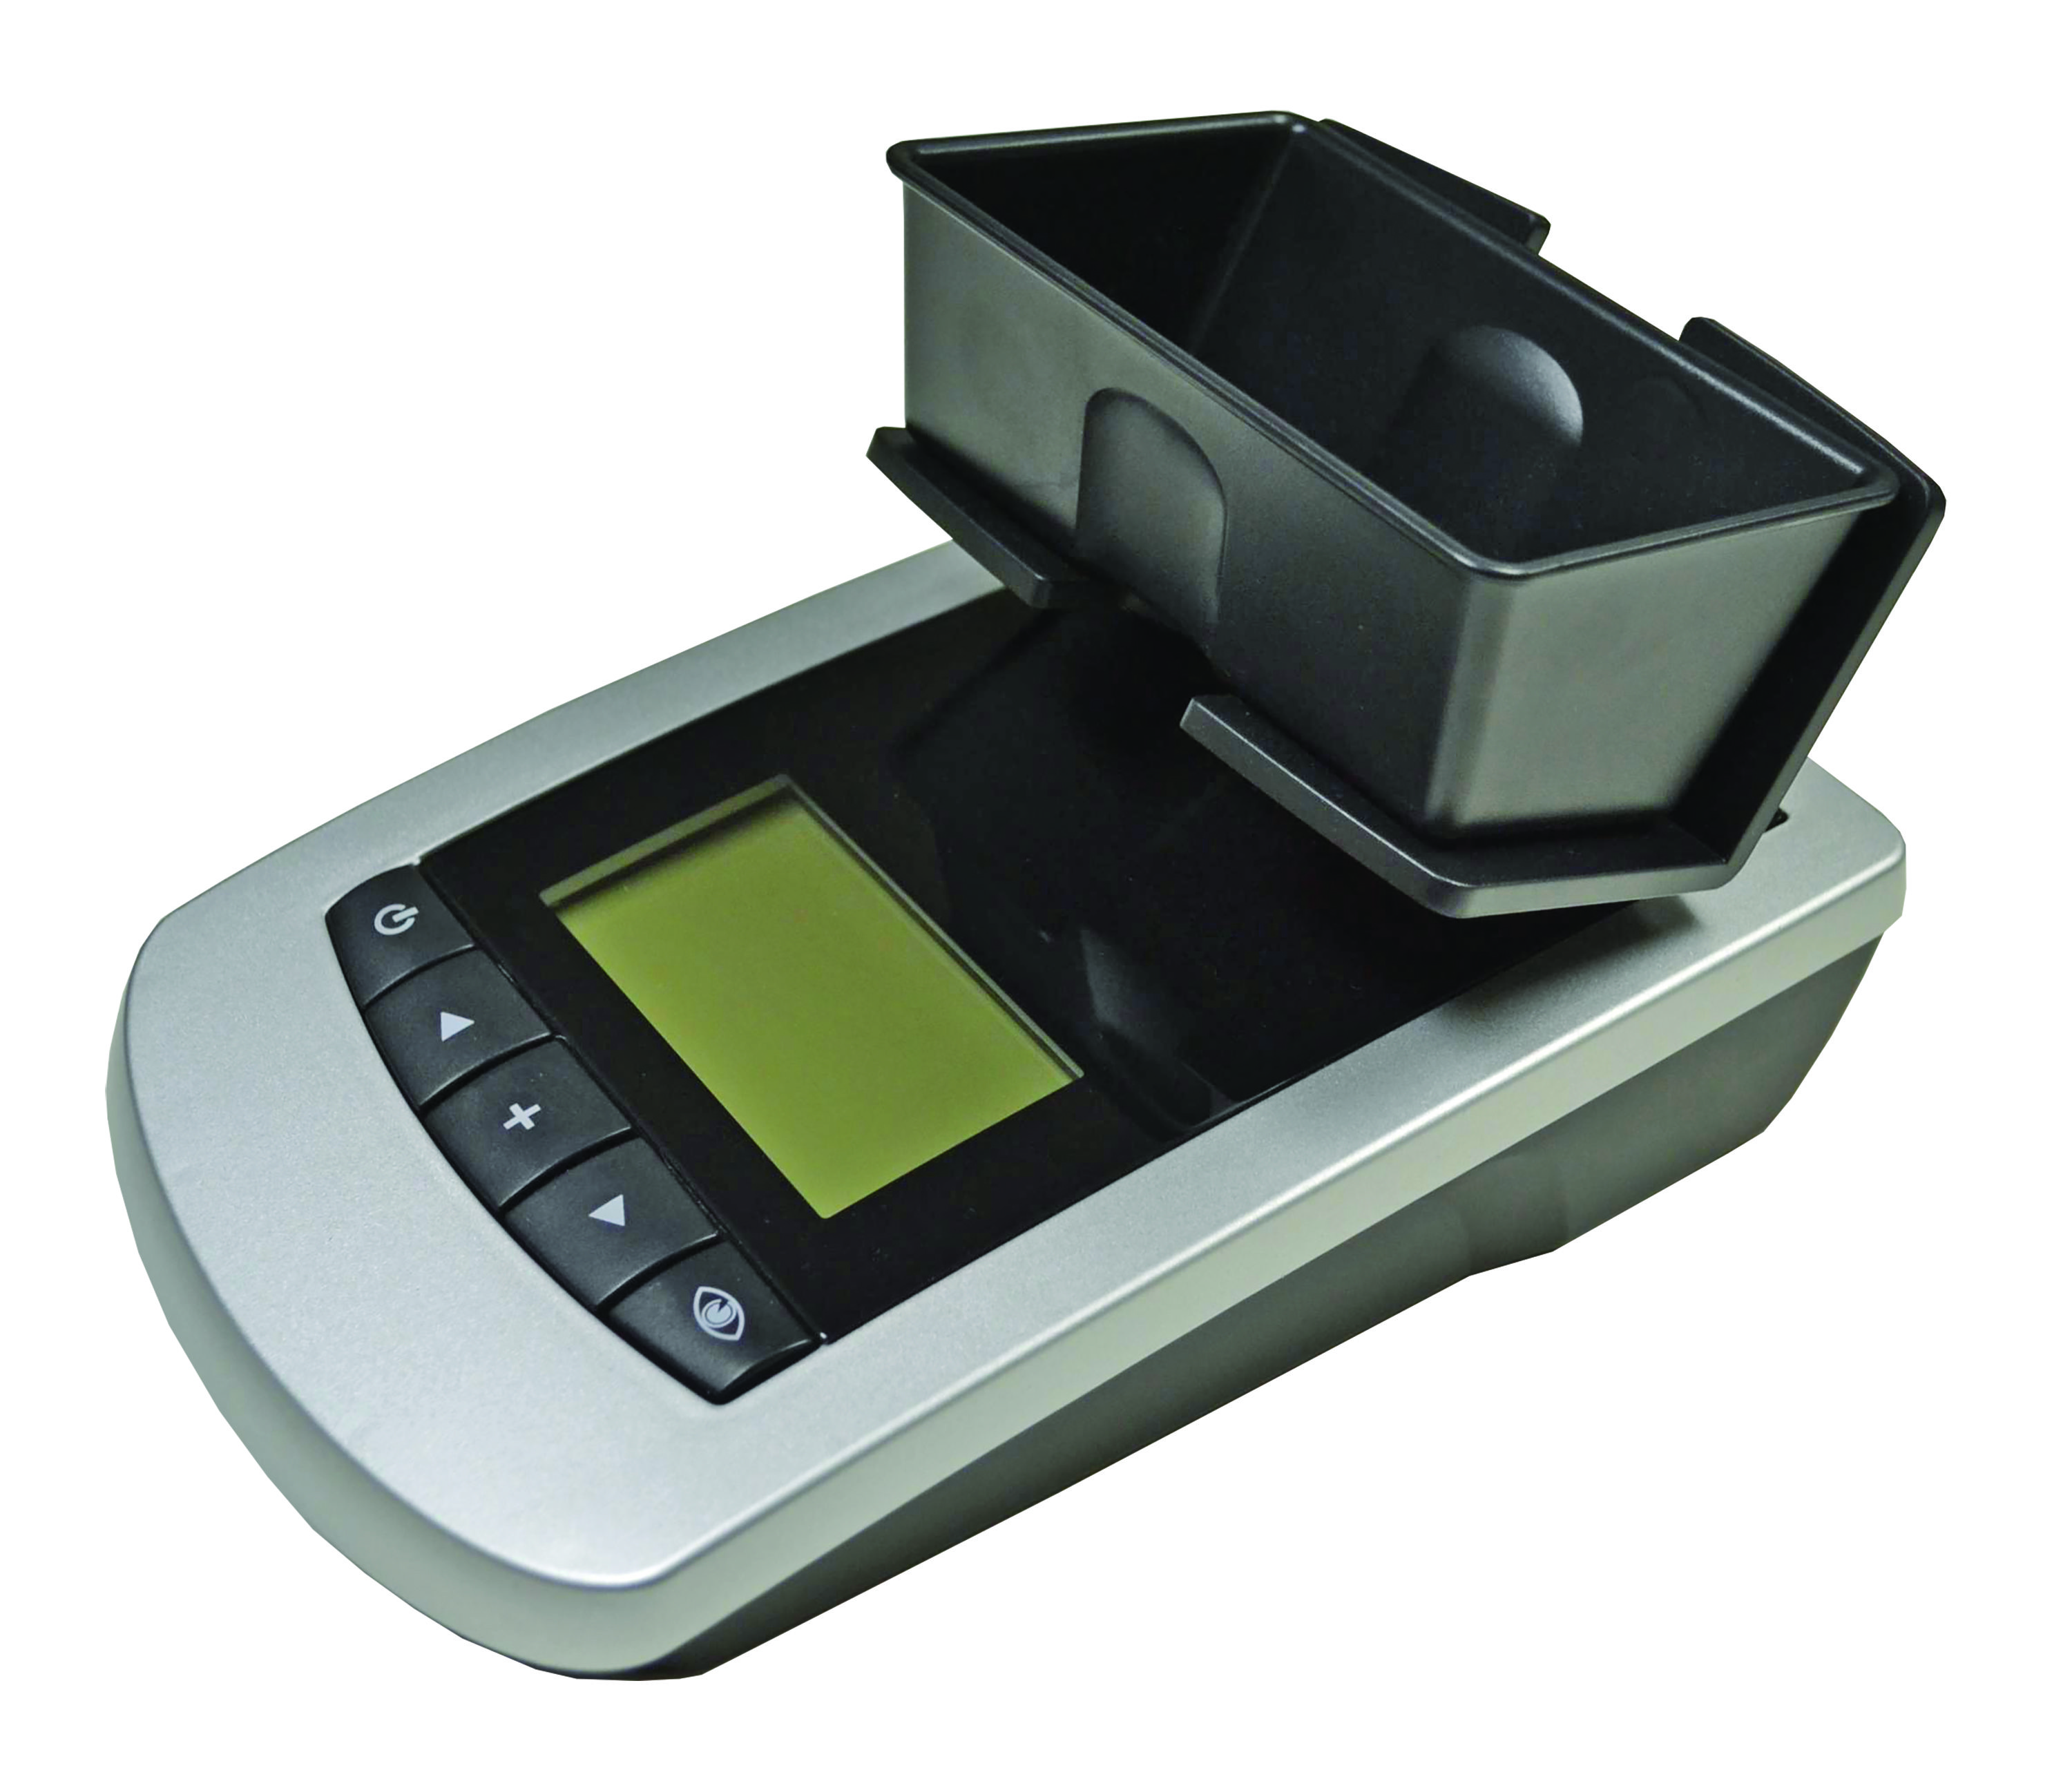 MCS-1000 Money Counting Scale